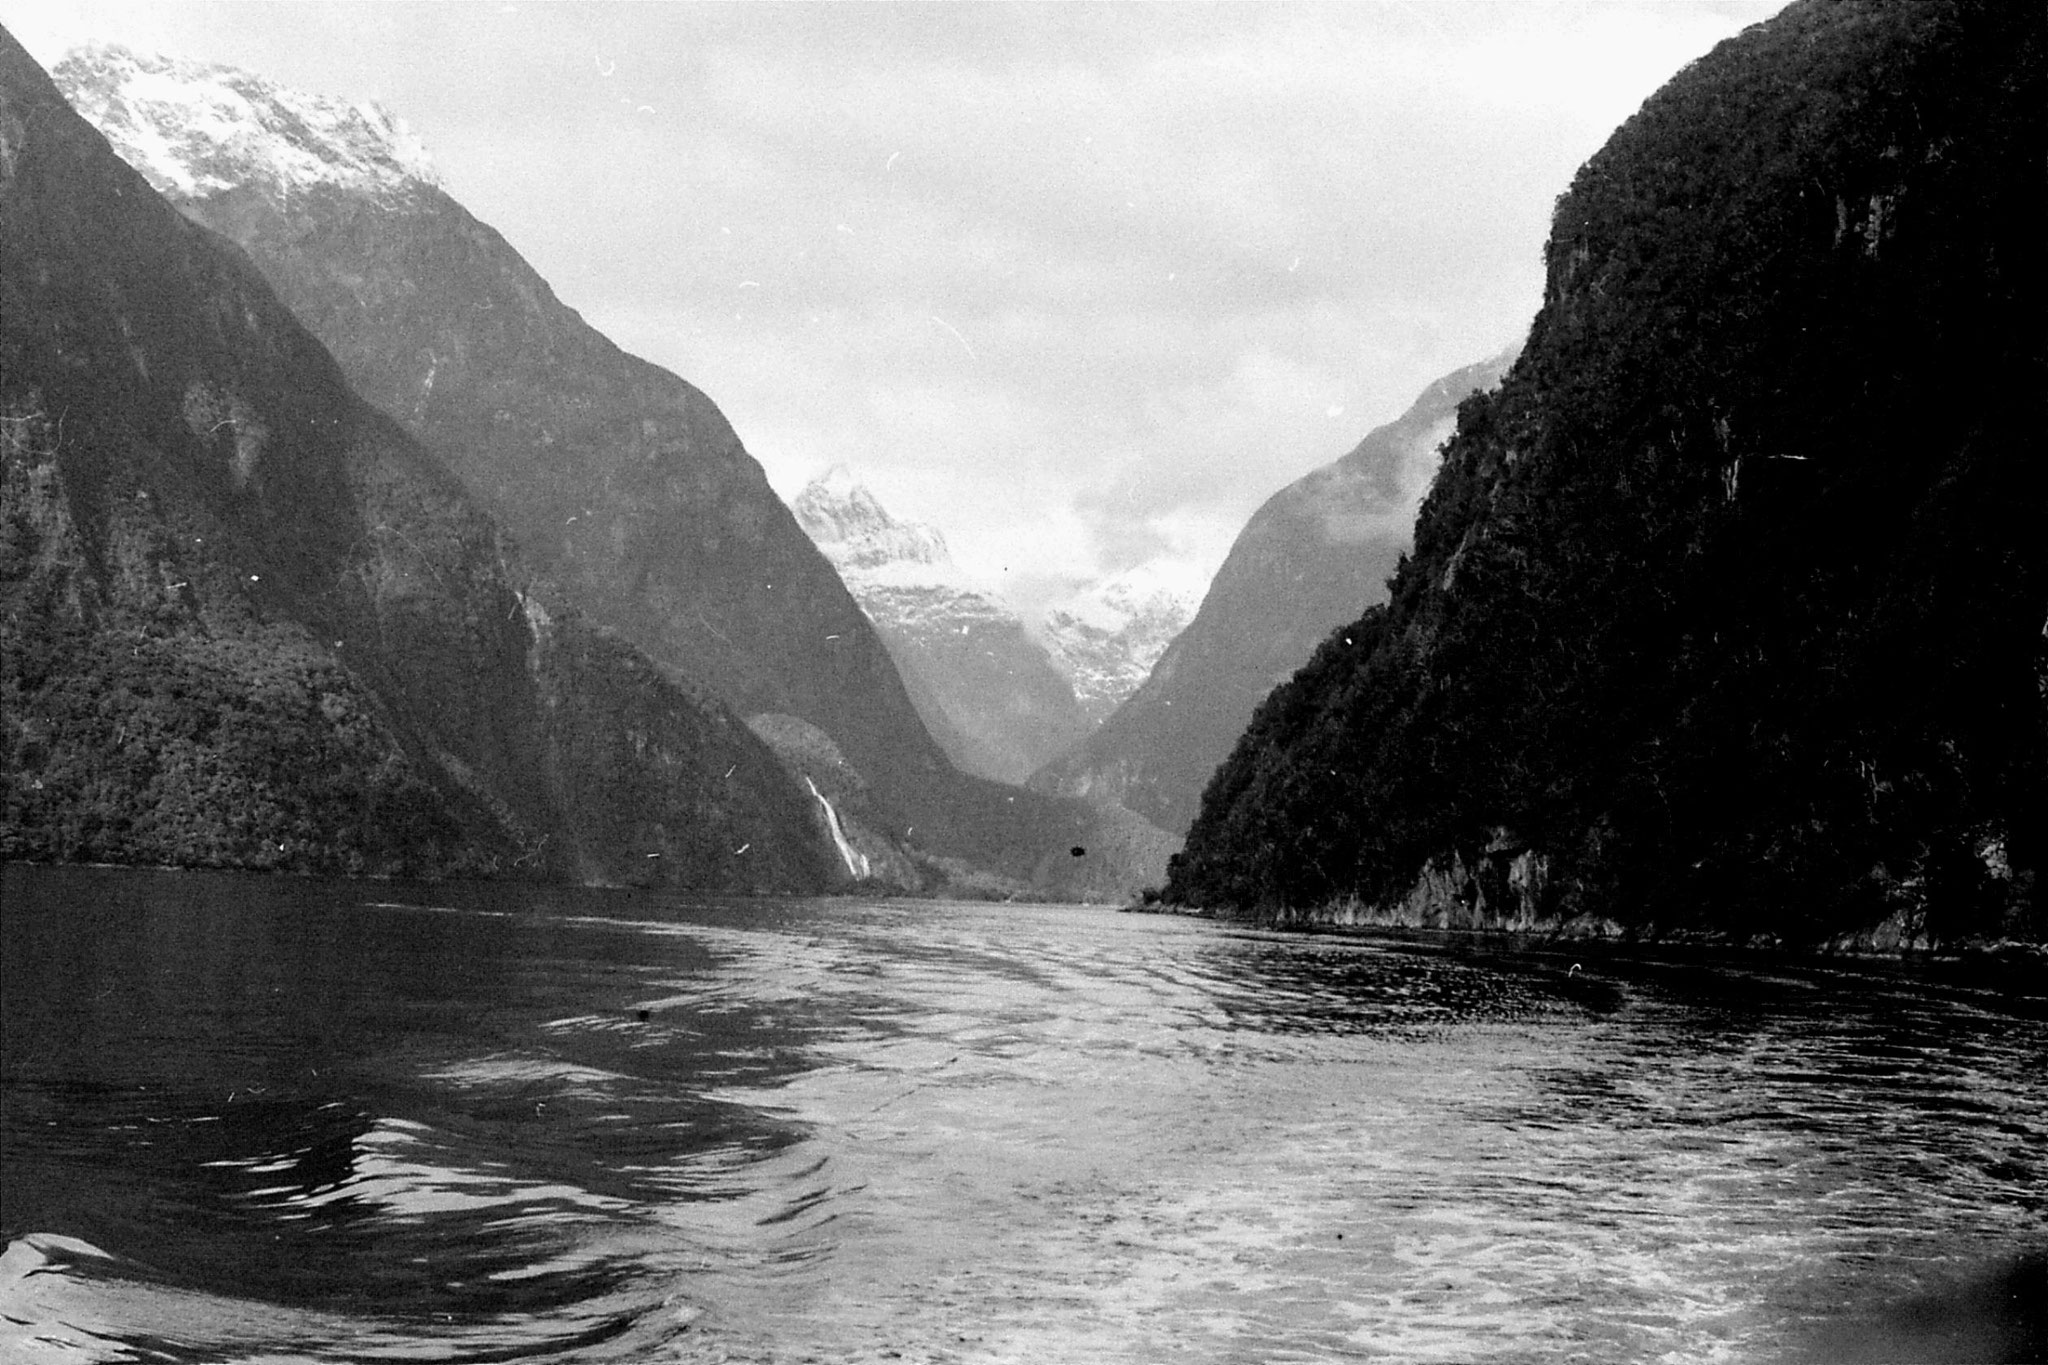 15/8/1990: 16: looking up to head of Milford Sound with Lady Bowes Falls